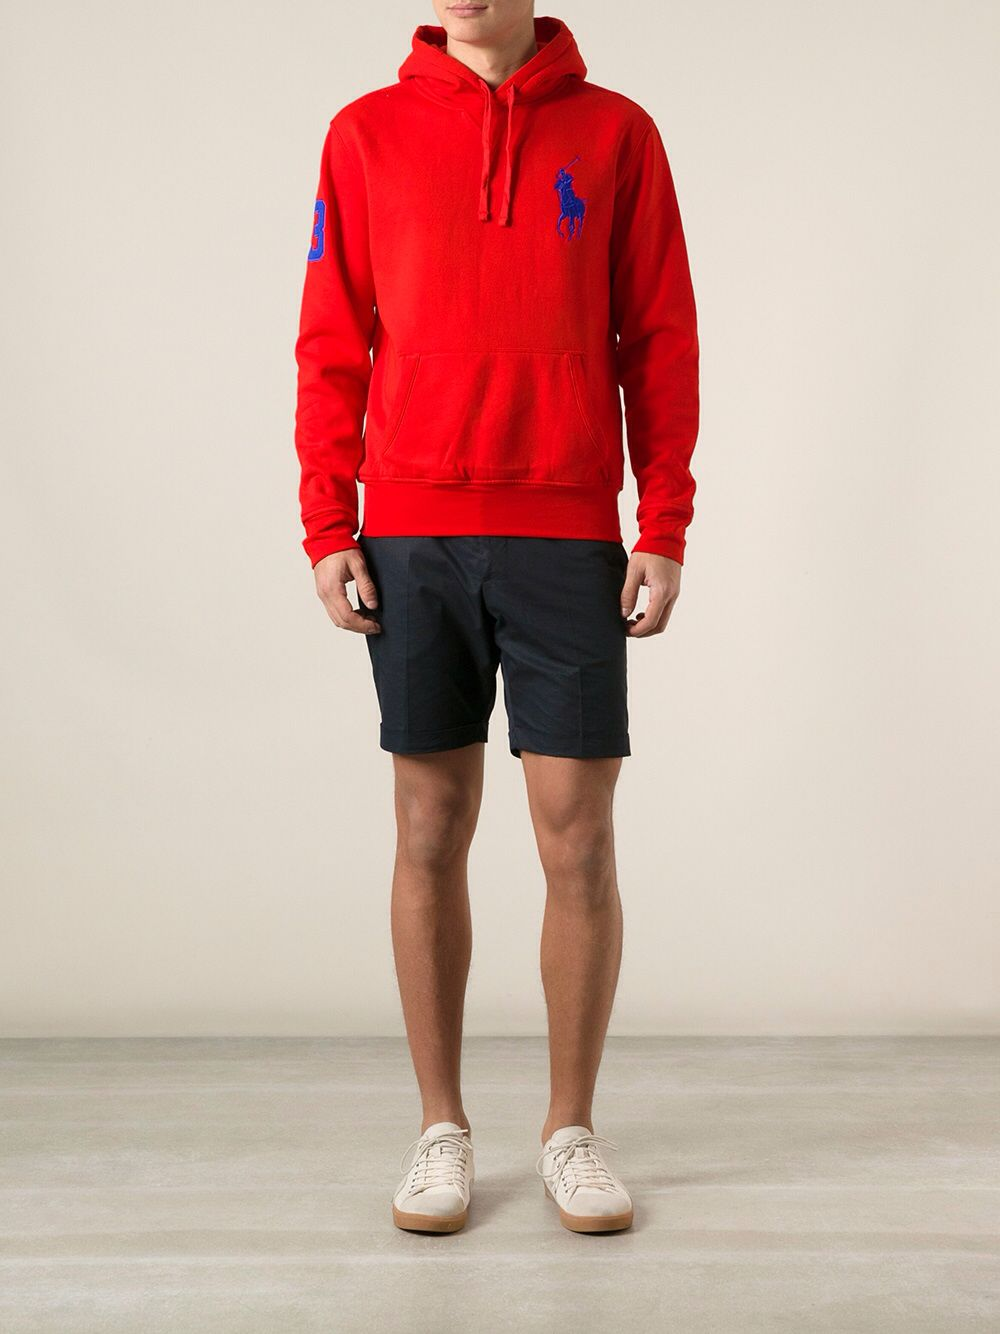 Ralph Lauren Polo Red Hoodie, perfect for winter.